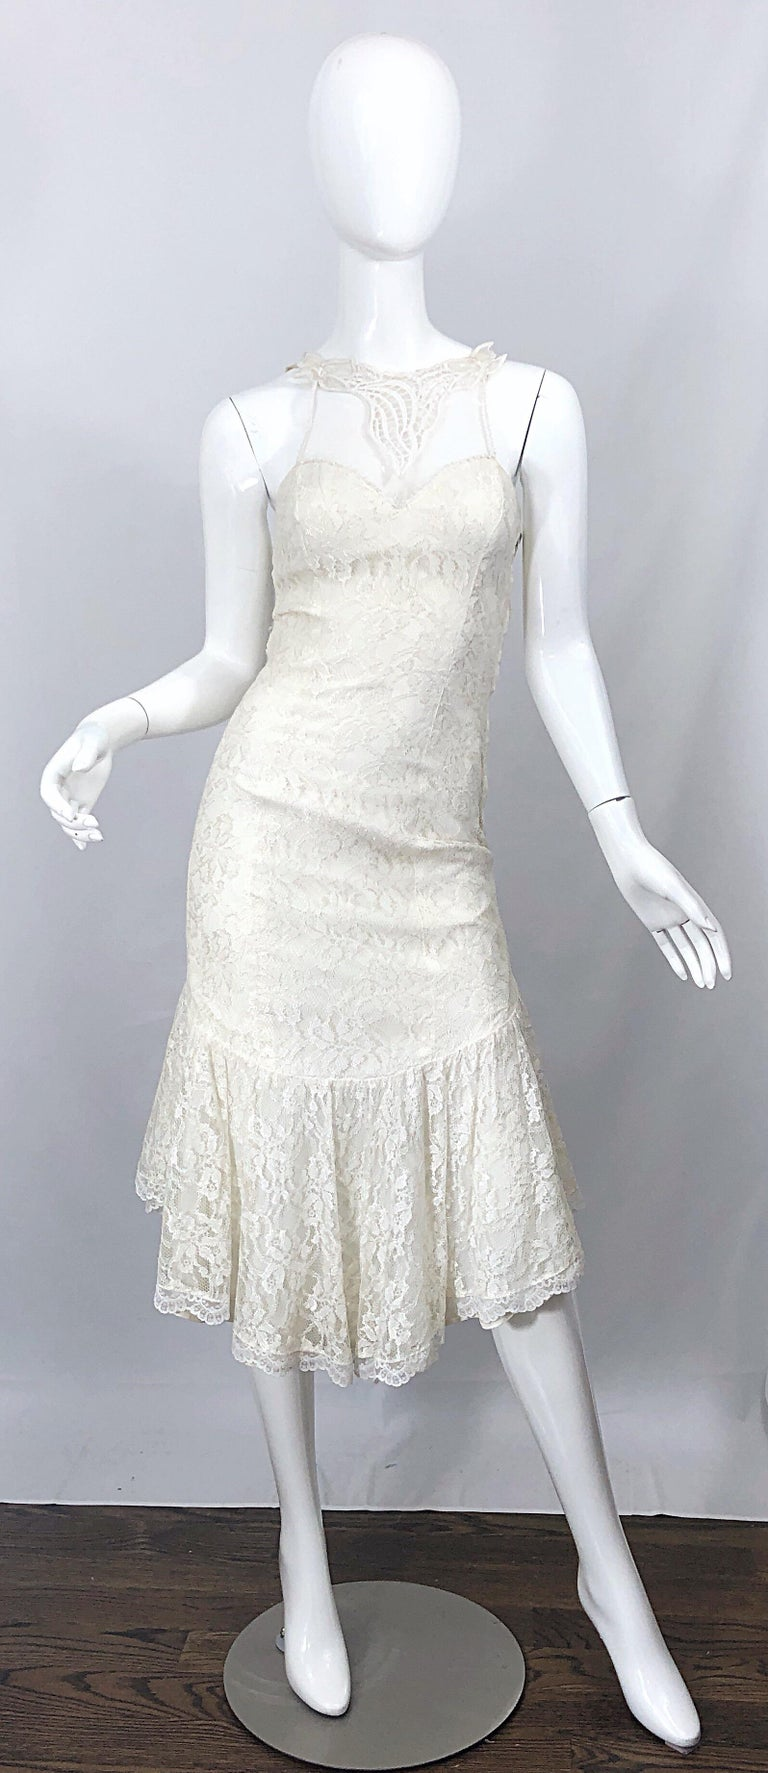 1980s Samir Ivory White Lace Handkerchief Hem Embroidered Vintage 80s Dress For Sale 9